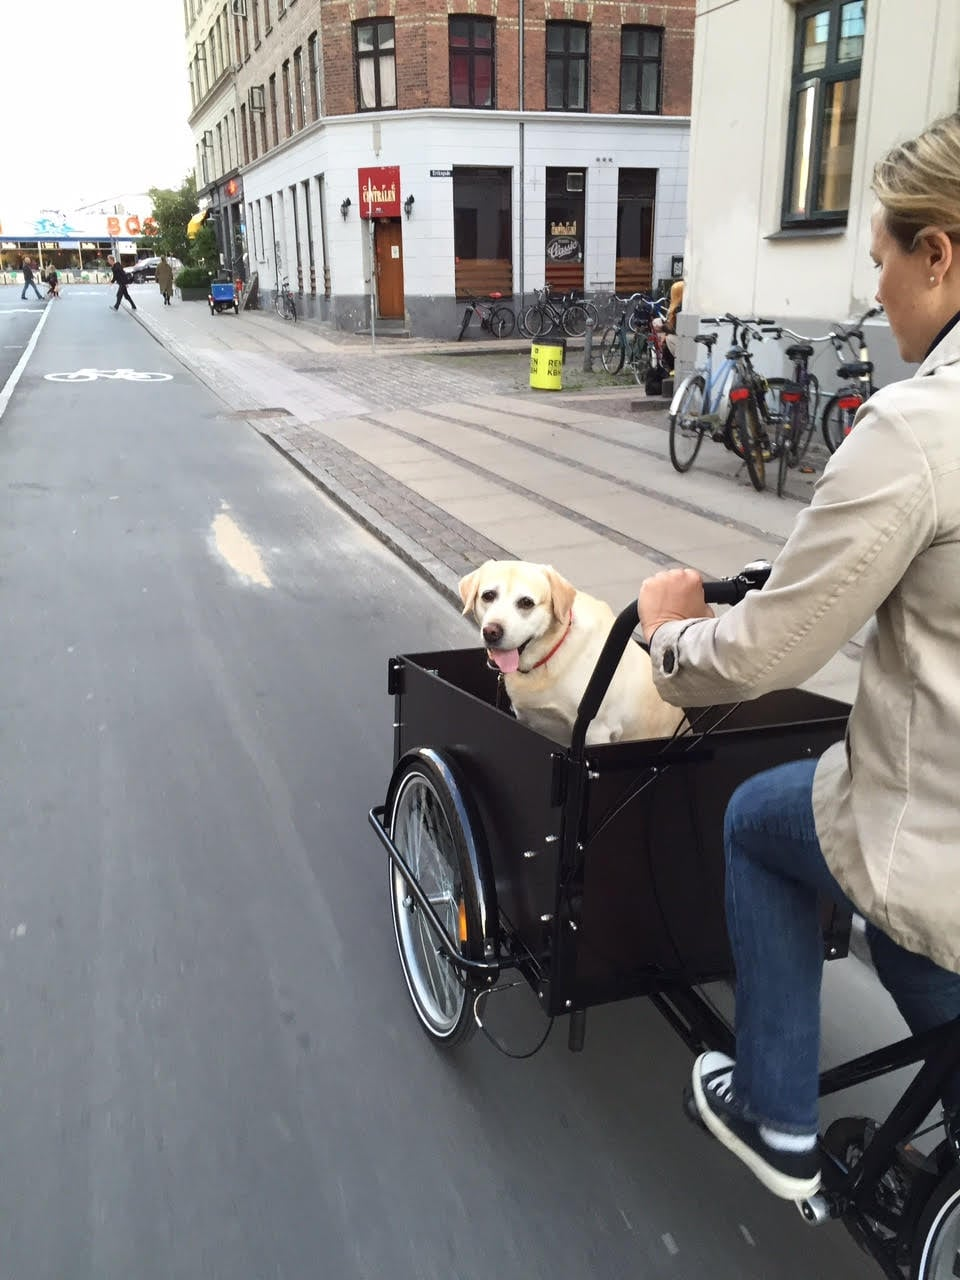 My friend's super-cute dog is enjoying the ride!